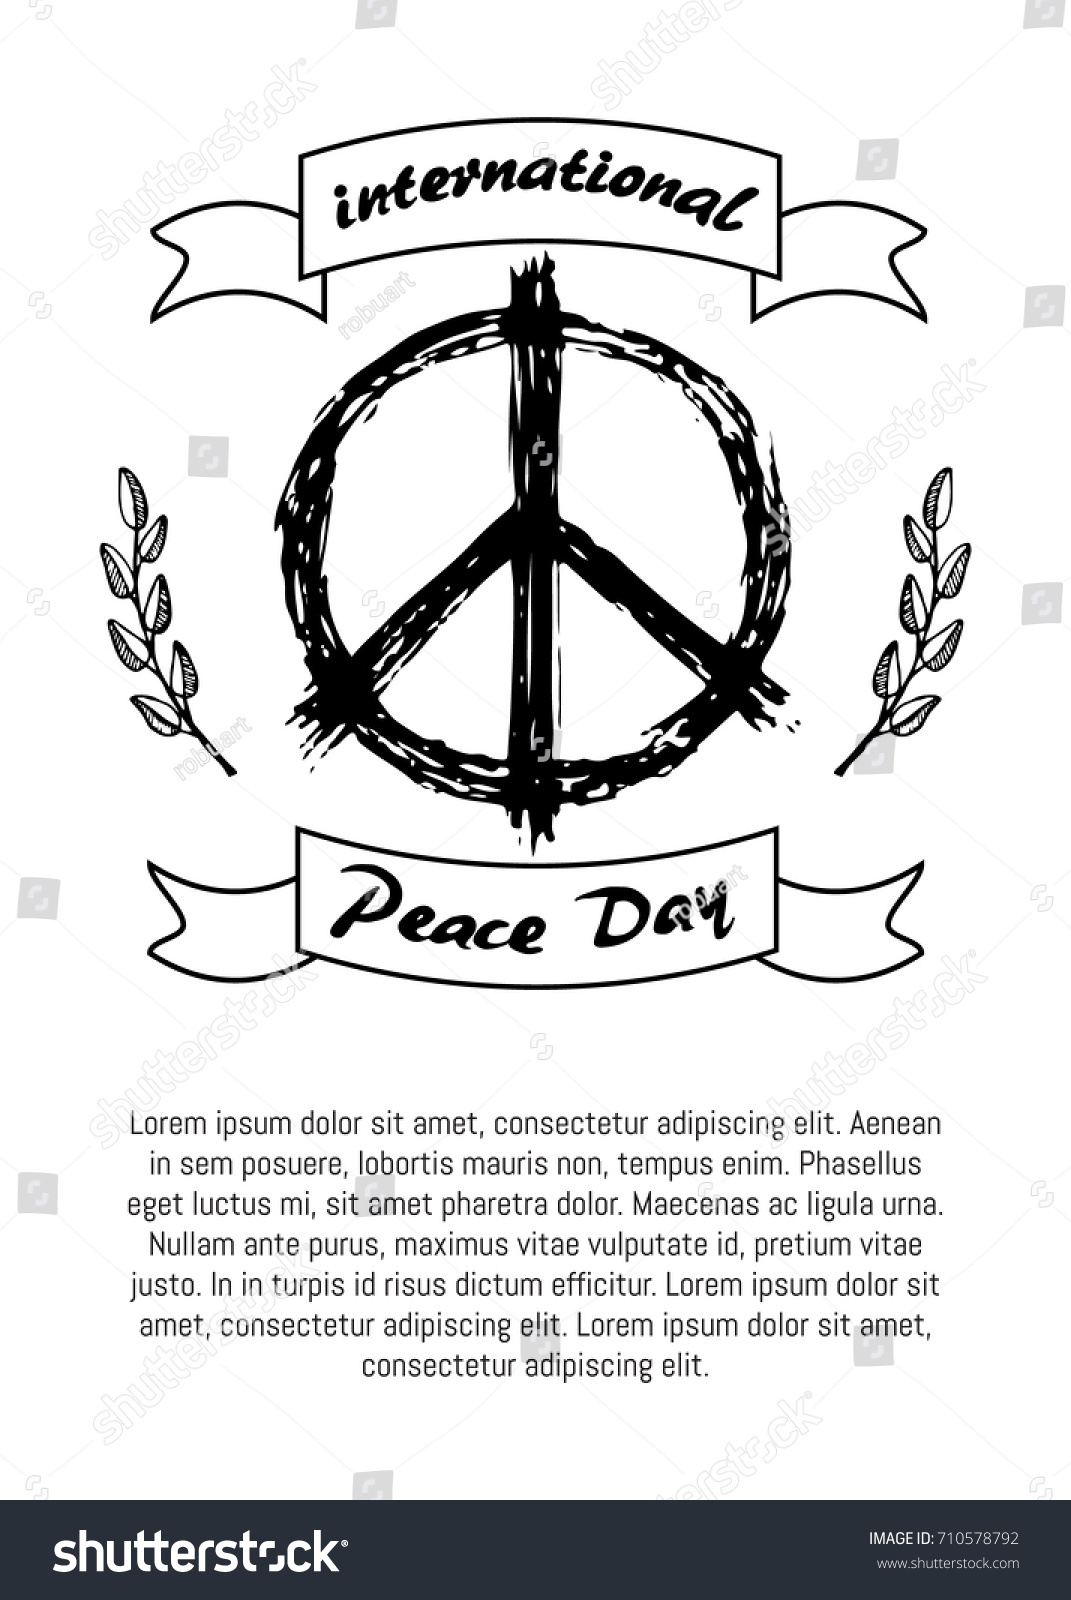 International peace day poster hippie sign stock vector 710578792 international peace day poster with hippie sign in black and white colors and olive branch symbols biocorpaavc Images